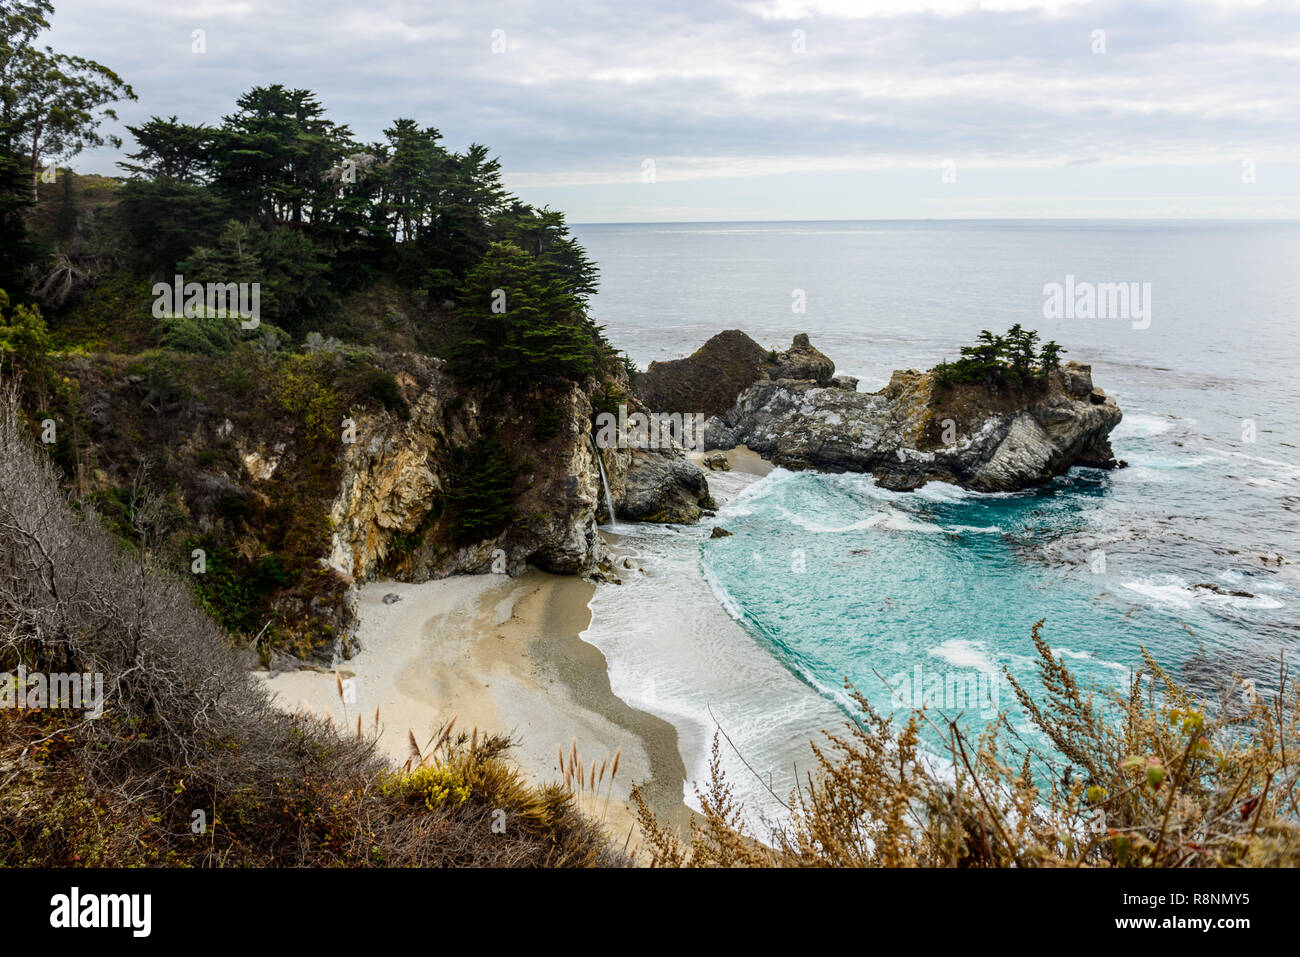 McWay Falls cove located in Big Sur highway road 1, California, USA. - Stock Image